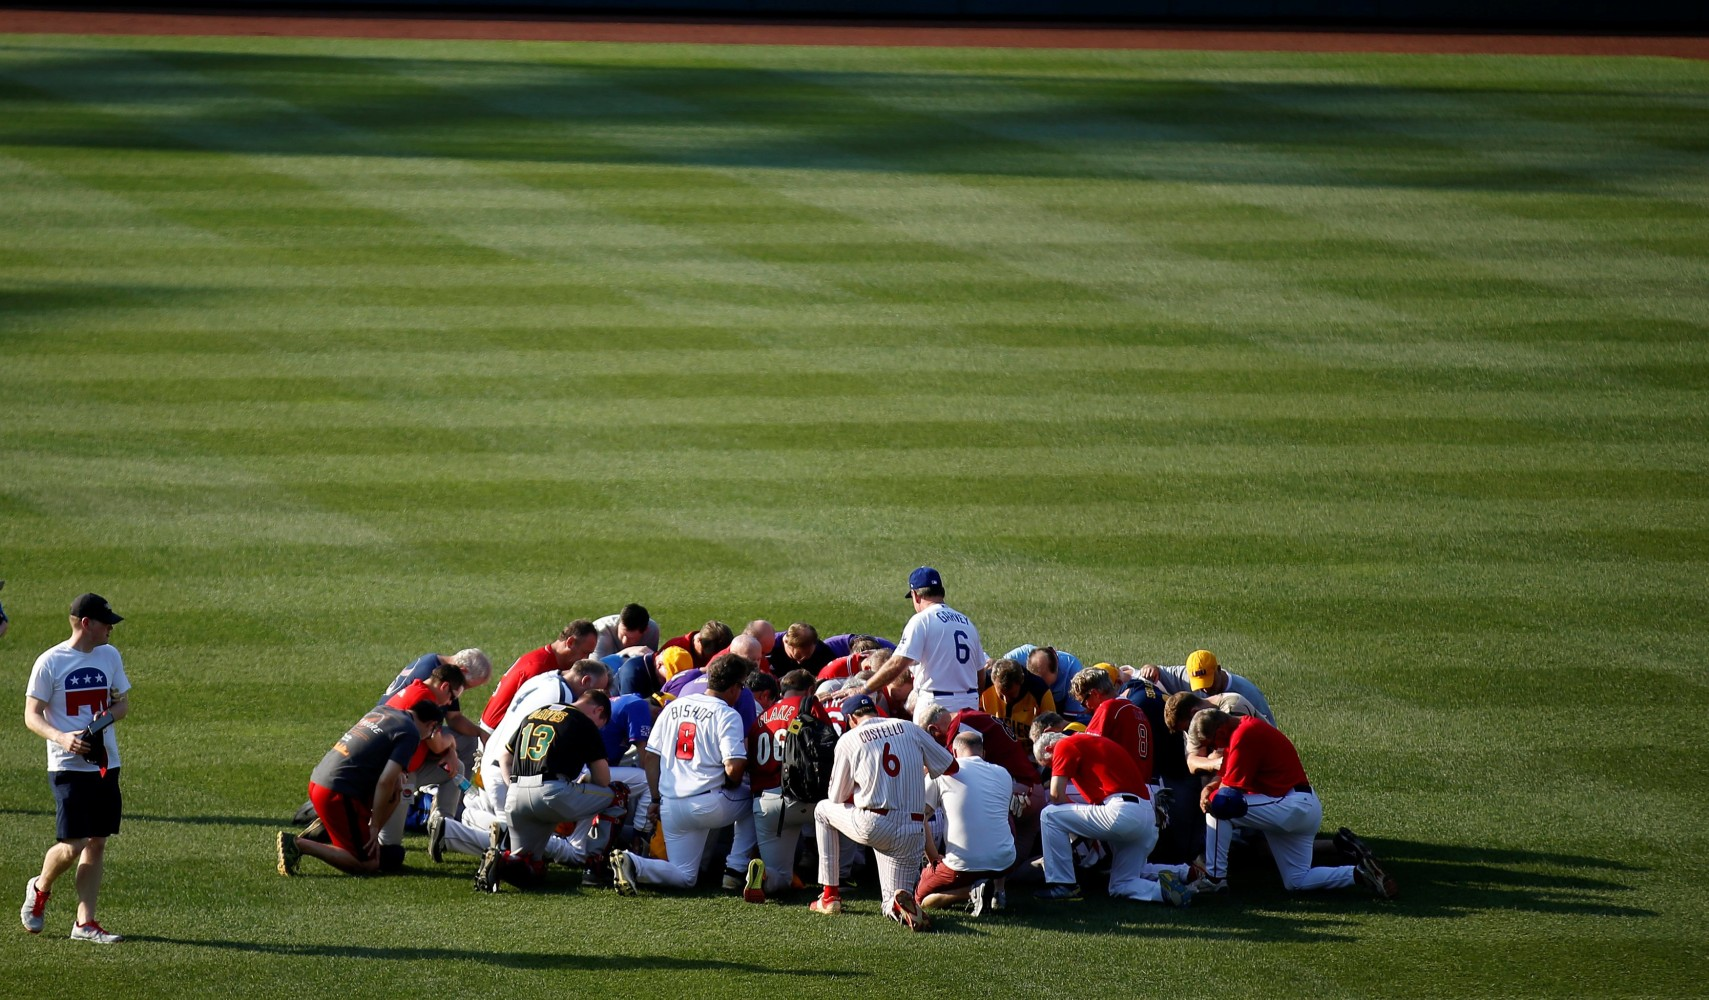 Nebraska congressional delegation expresses shock, offers prayers after shooting at ballfield